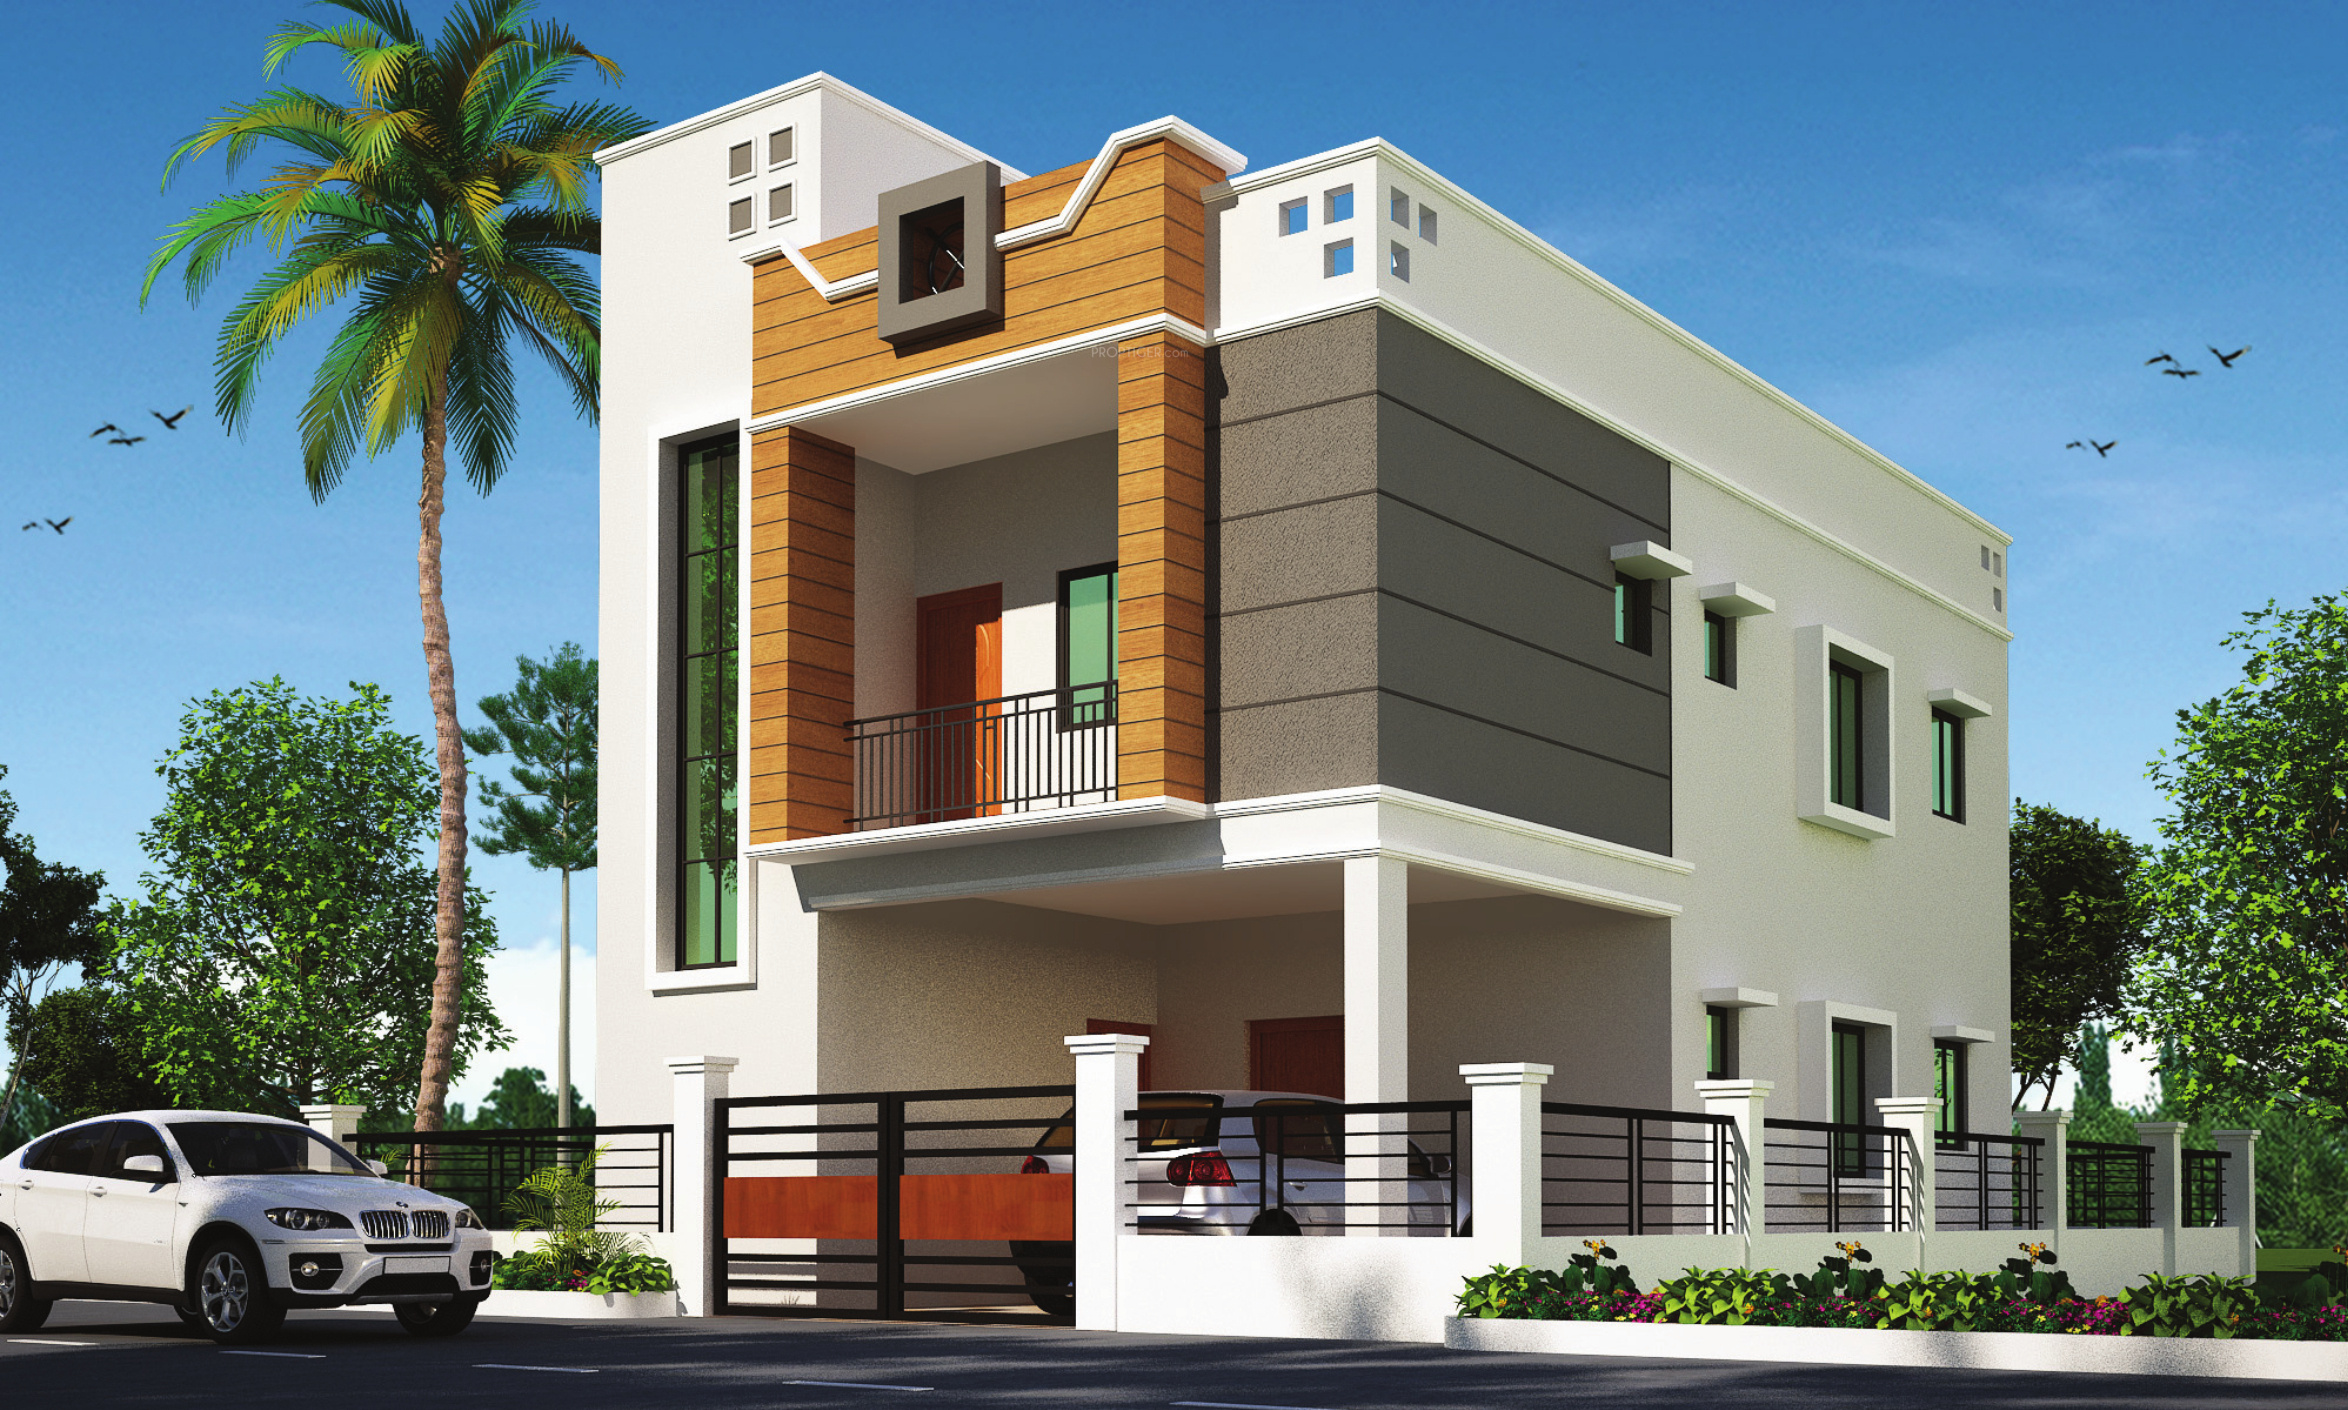 Front Elevation Of House In Kolkata : Main elevation image of shree sidhi vinayak buildcon